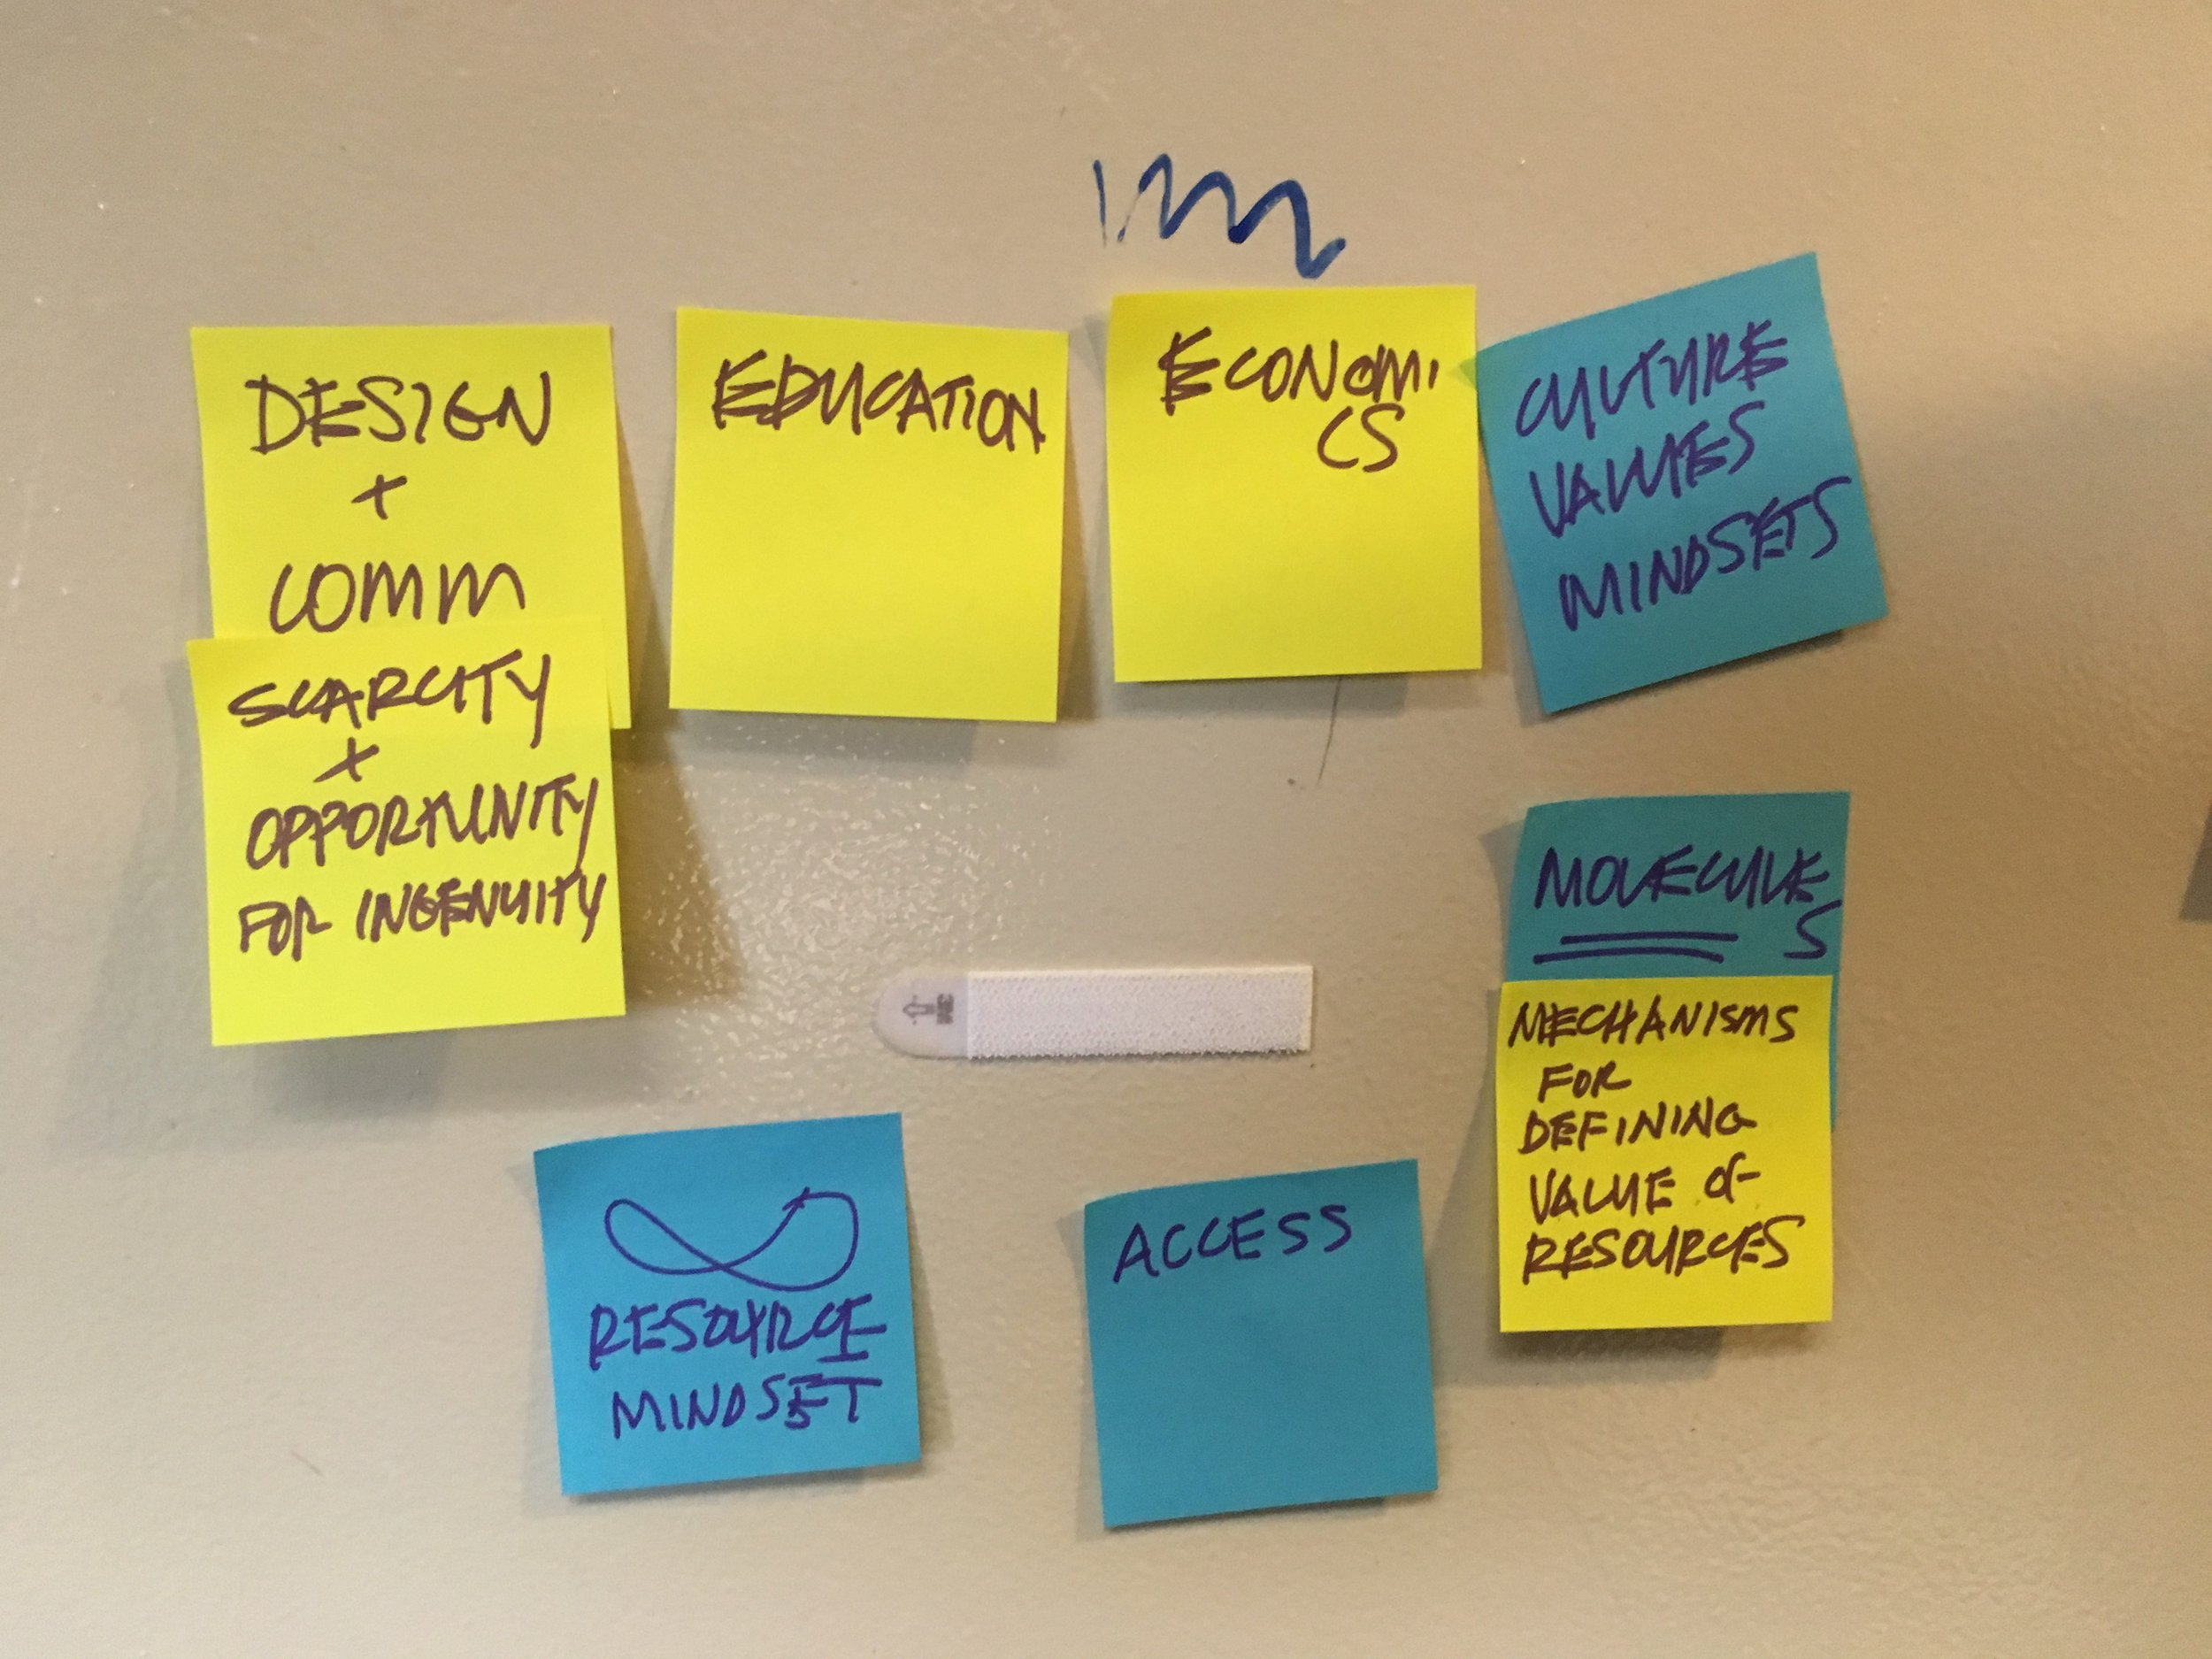 Some of the core elements of the system map we continue to refine as we move forward